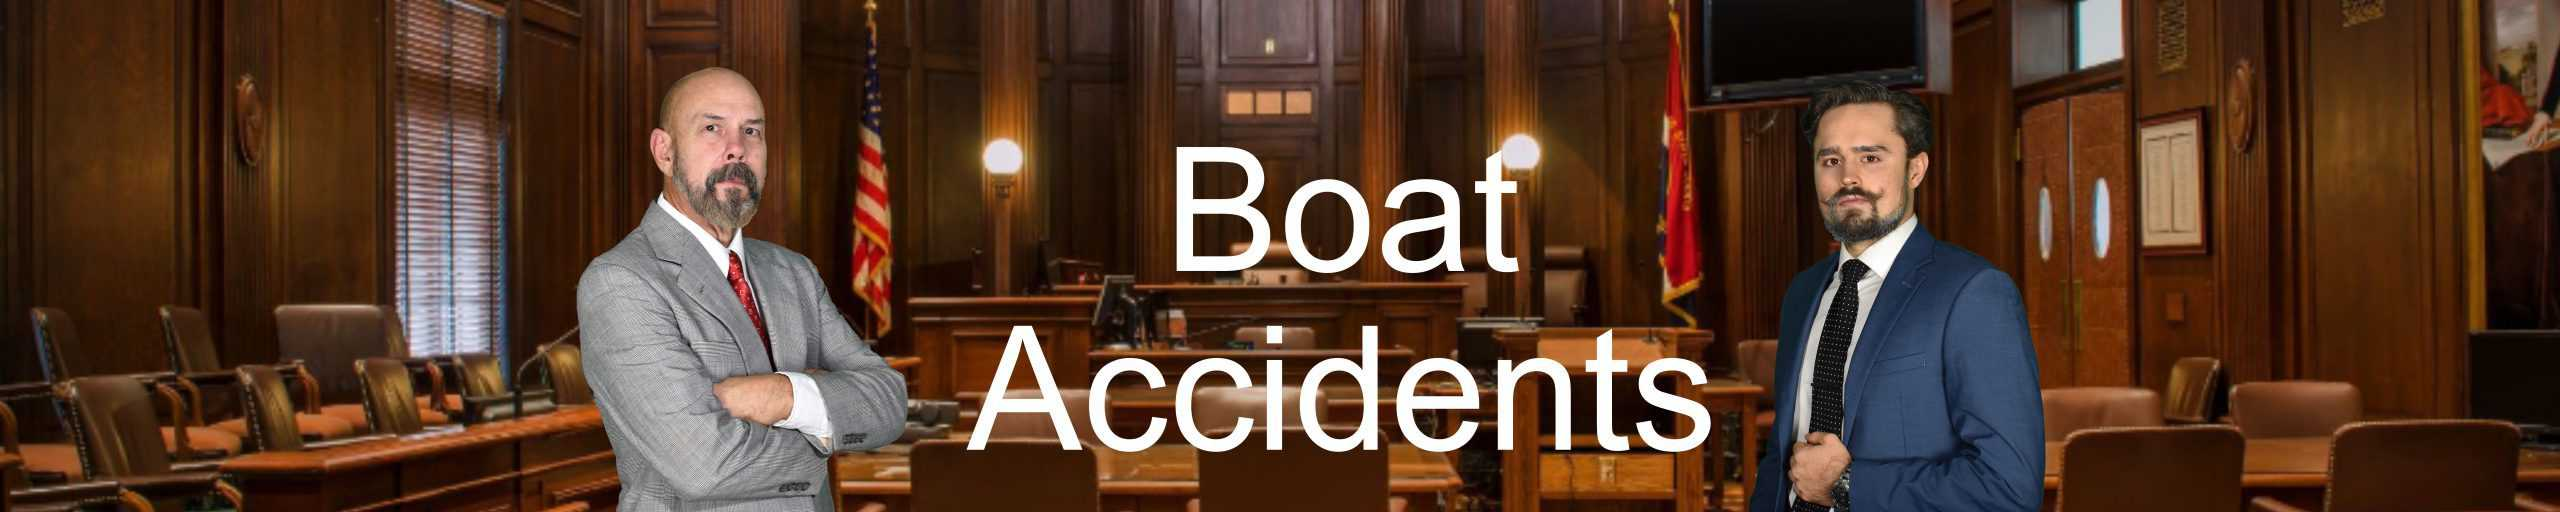 Boat-Accidents-Personal-Injury-Attorney-Lawyer-Hurt-Broken-Rear-End-Money-Settlement-Hospital-ER-Damage-Insurance-Company